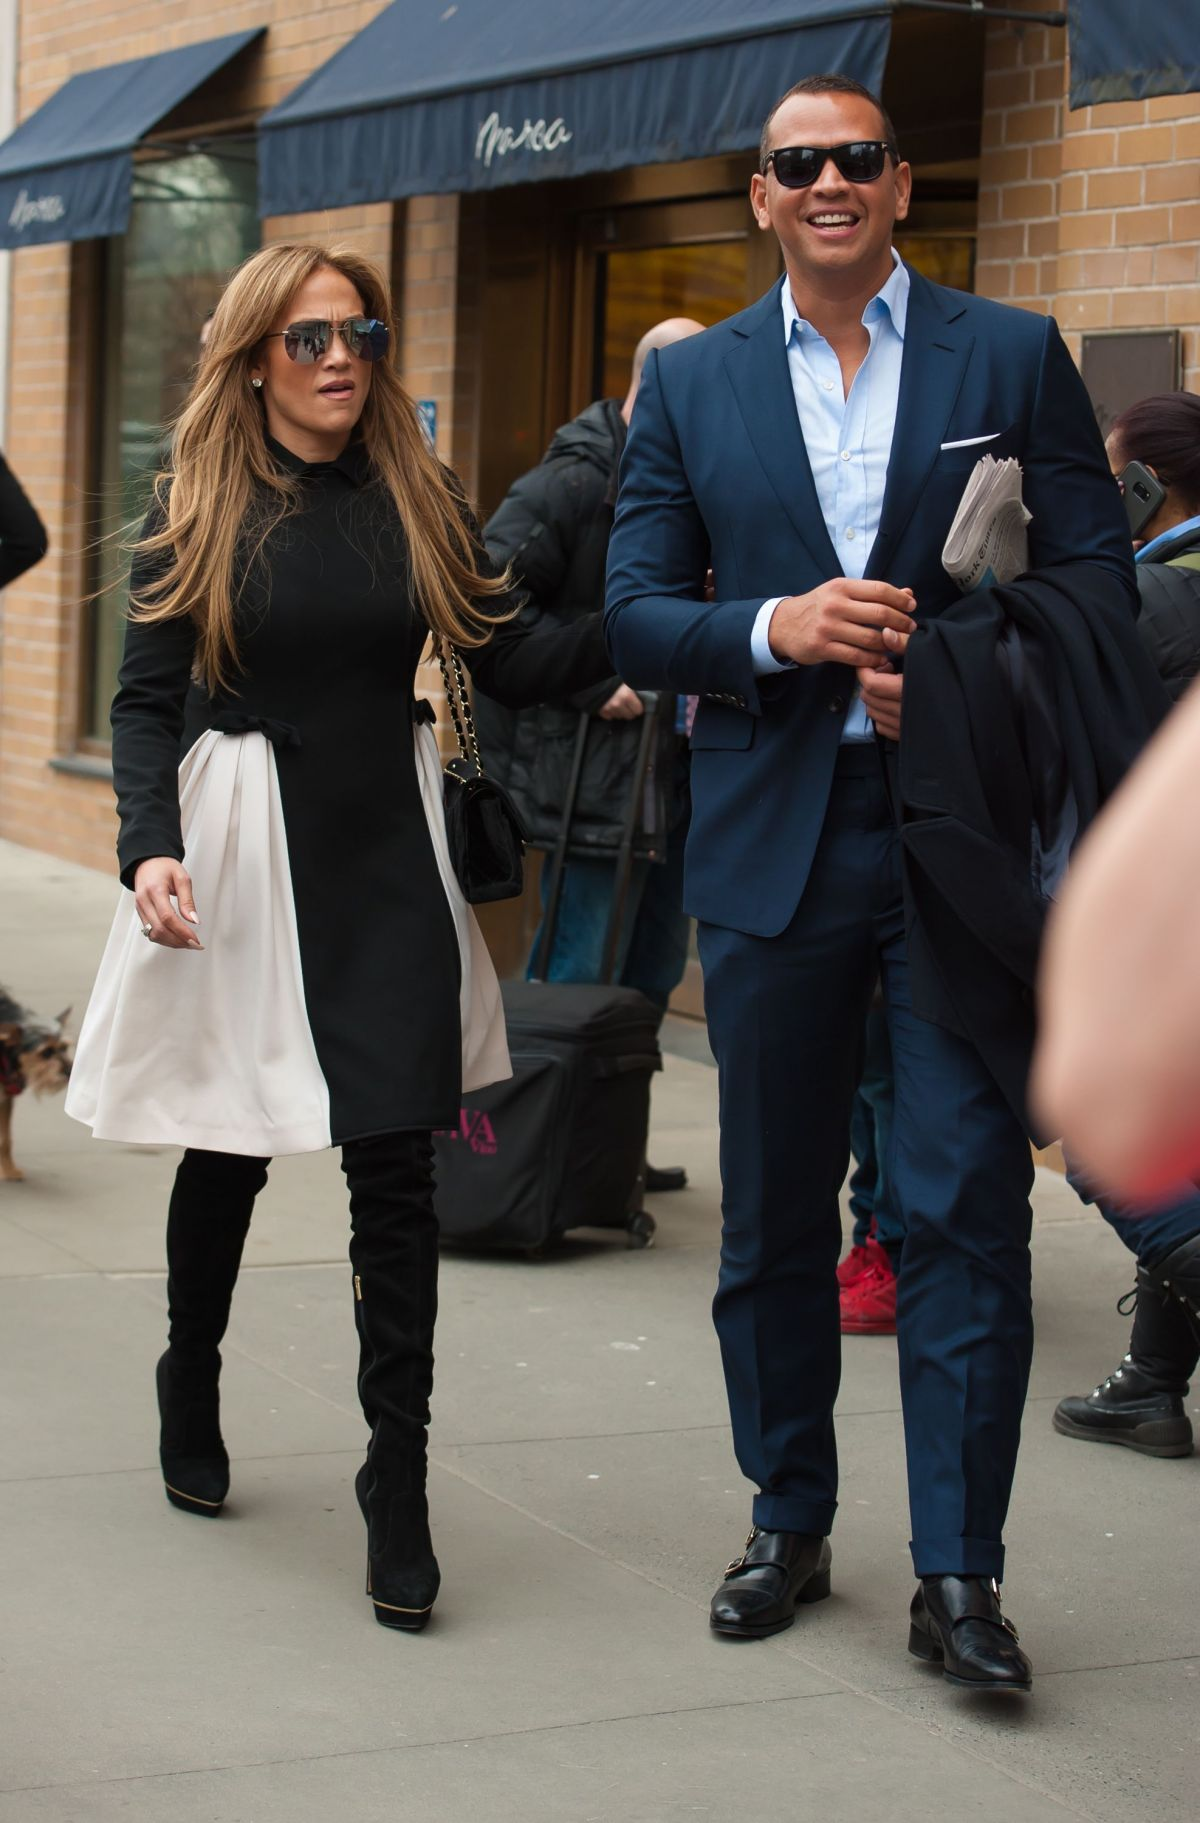 Jennifer Lopez And Her Boyfriend Alex Rodriguez Out In New York 04 01 2017 Hawtcelebs